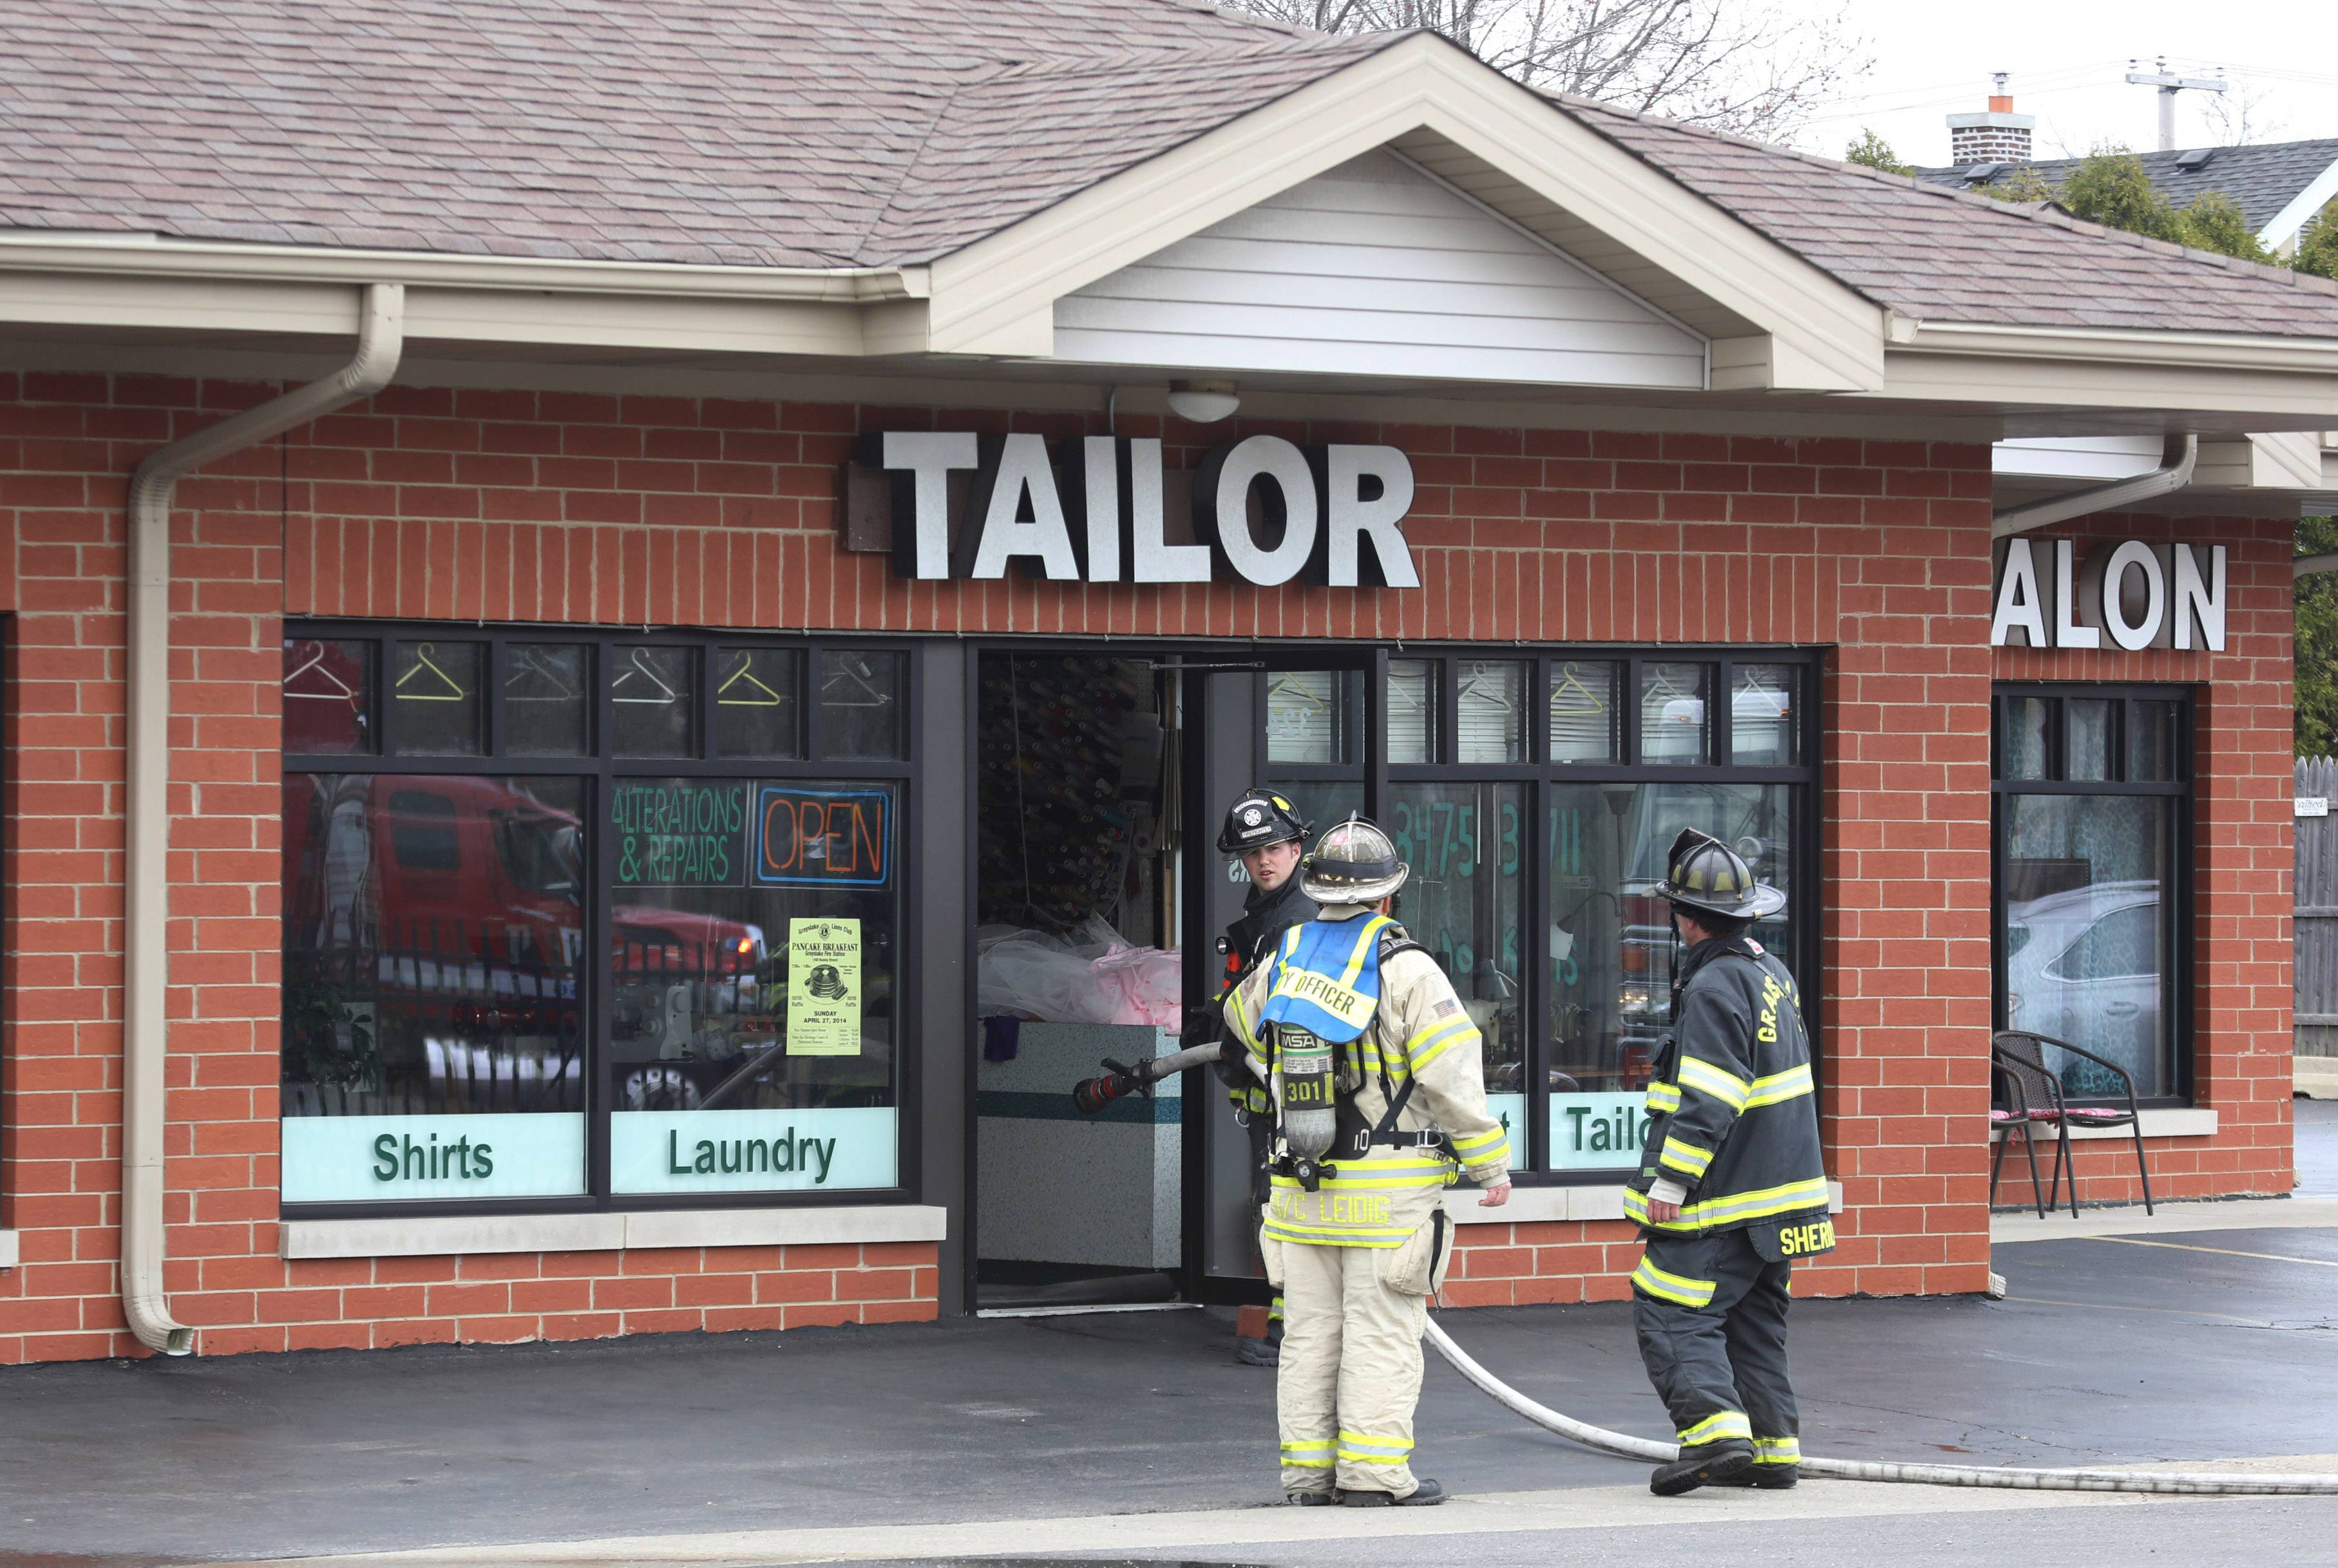 Fire department crews responded to what was first called a chemical spill at A1 Cleaners on Belvidere Road in Grayslake, but no chemical danger was found.